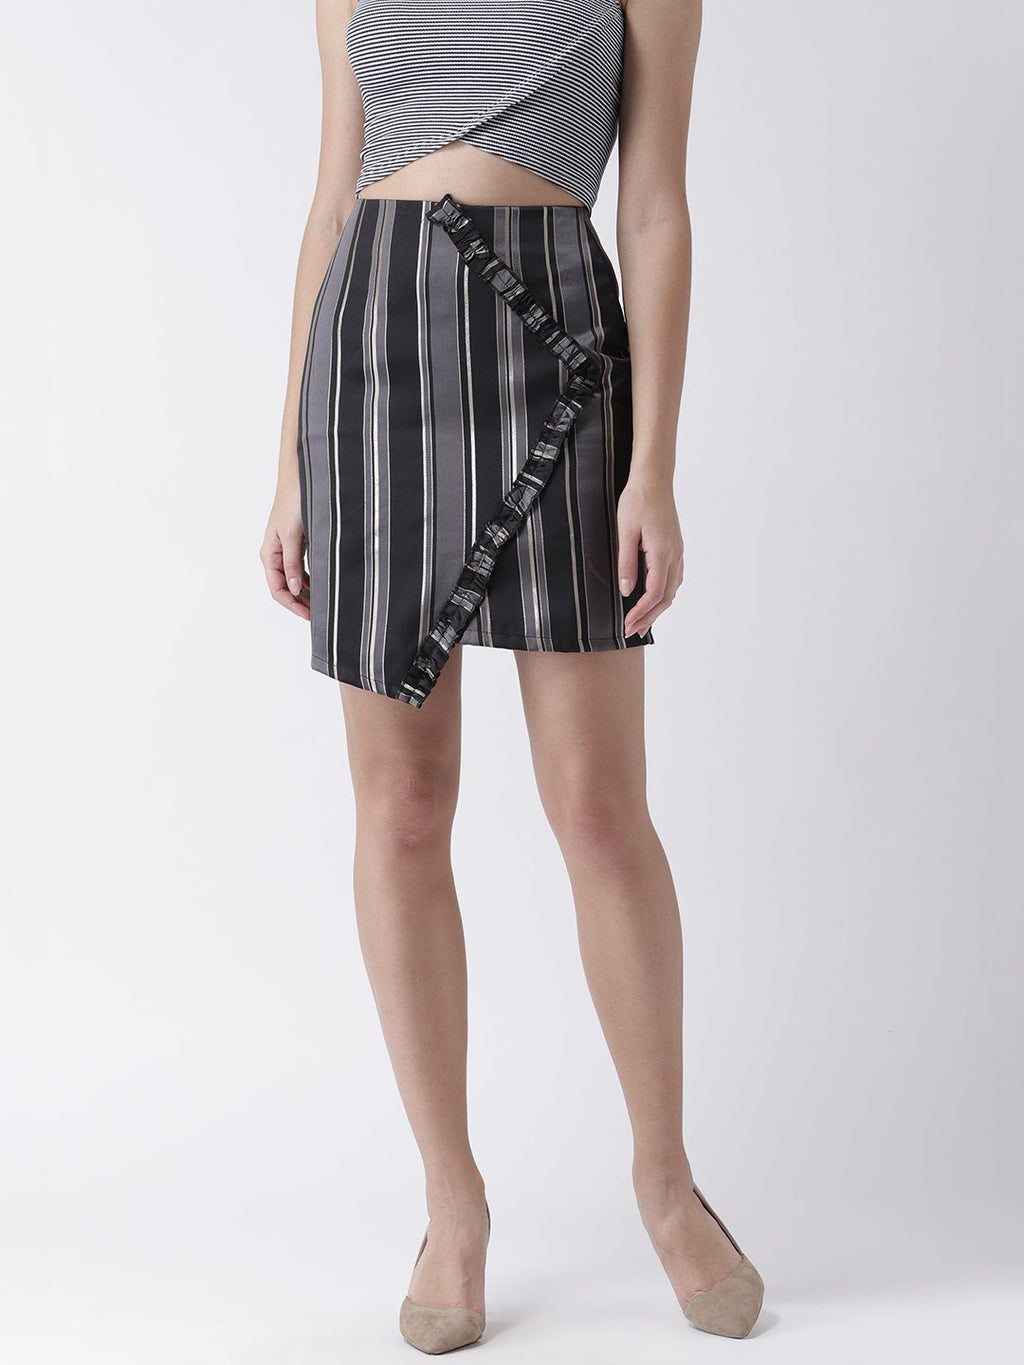 Asymmetrical Striped Skirt with Frill detail